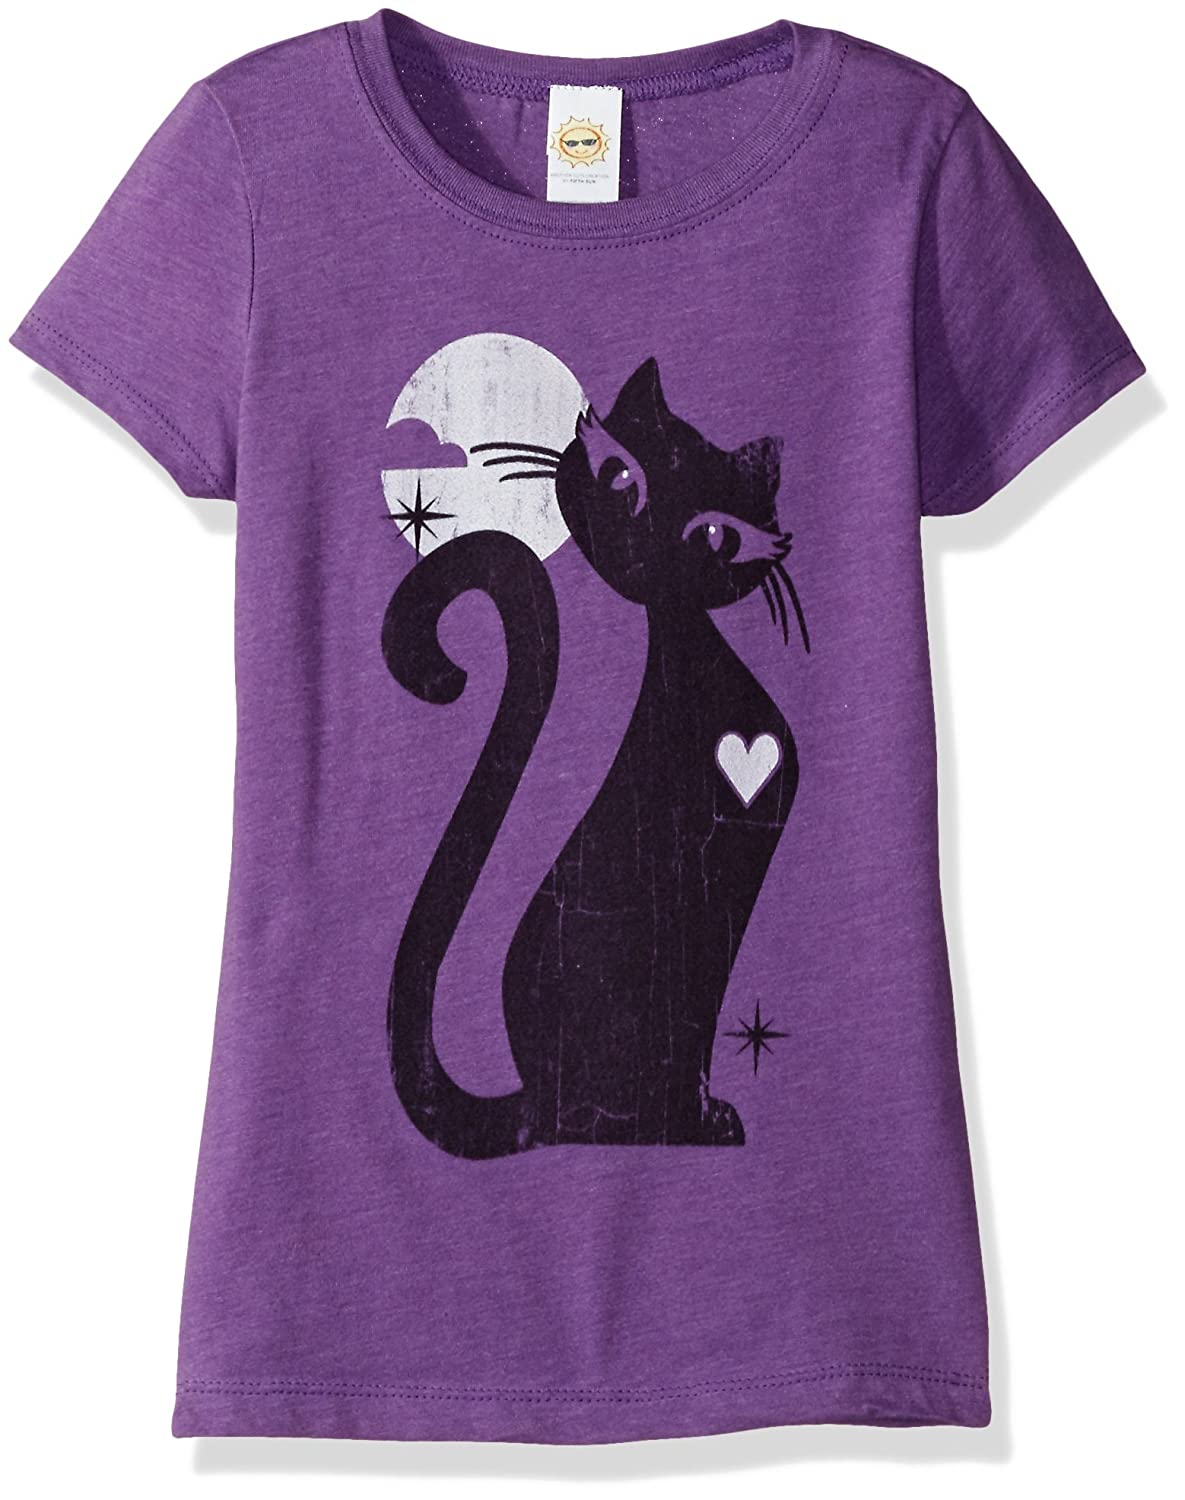 The Witching Hour T-Shirt by The Mountain Magicians Black Cat Full Moon S-5XL